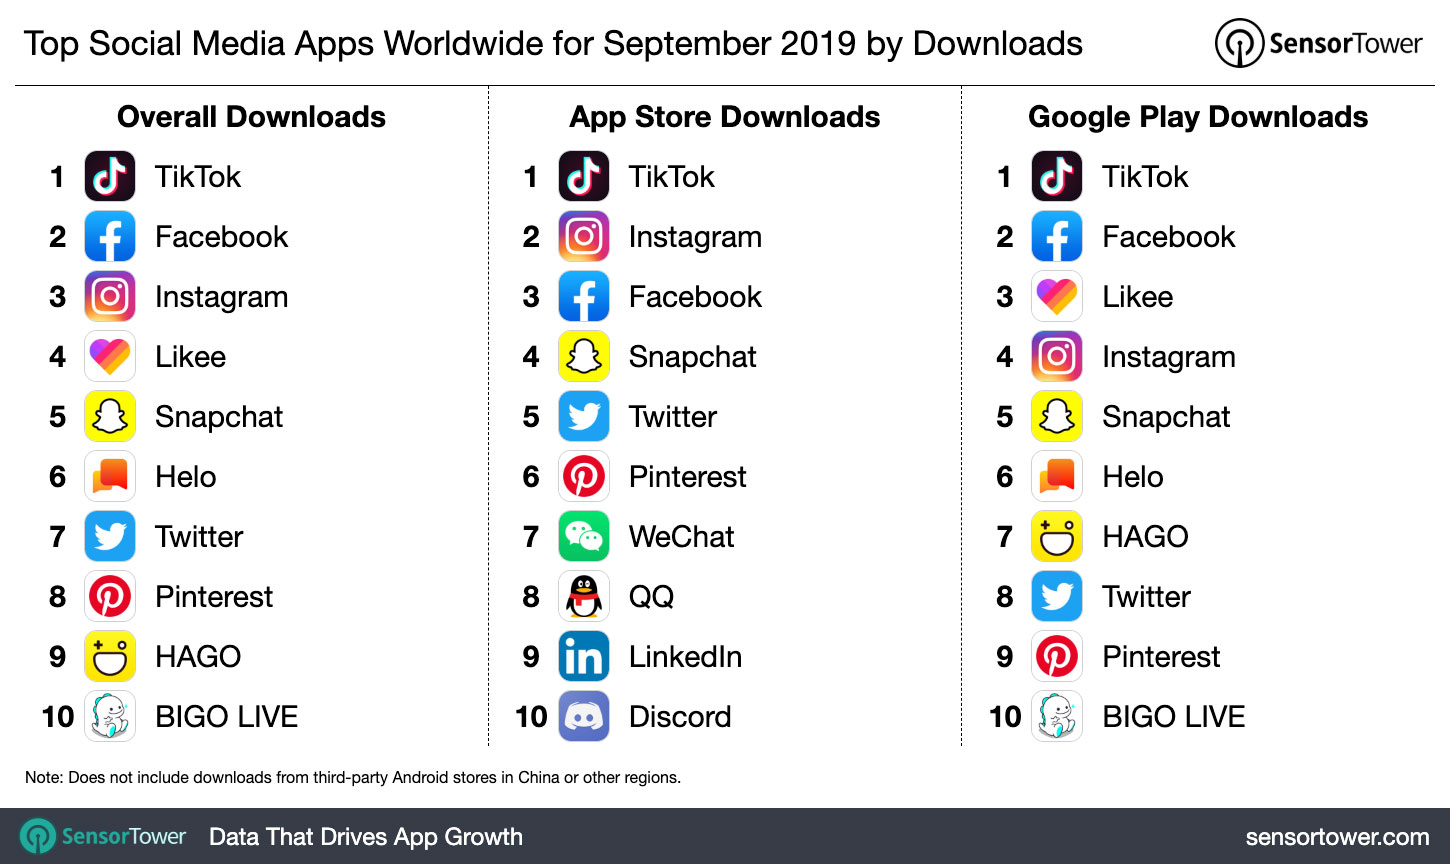 Top Social Media Apps Worldwide for September 2019 by Downloads